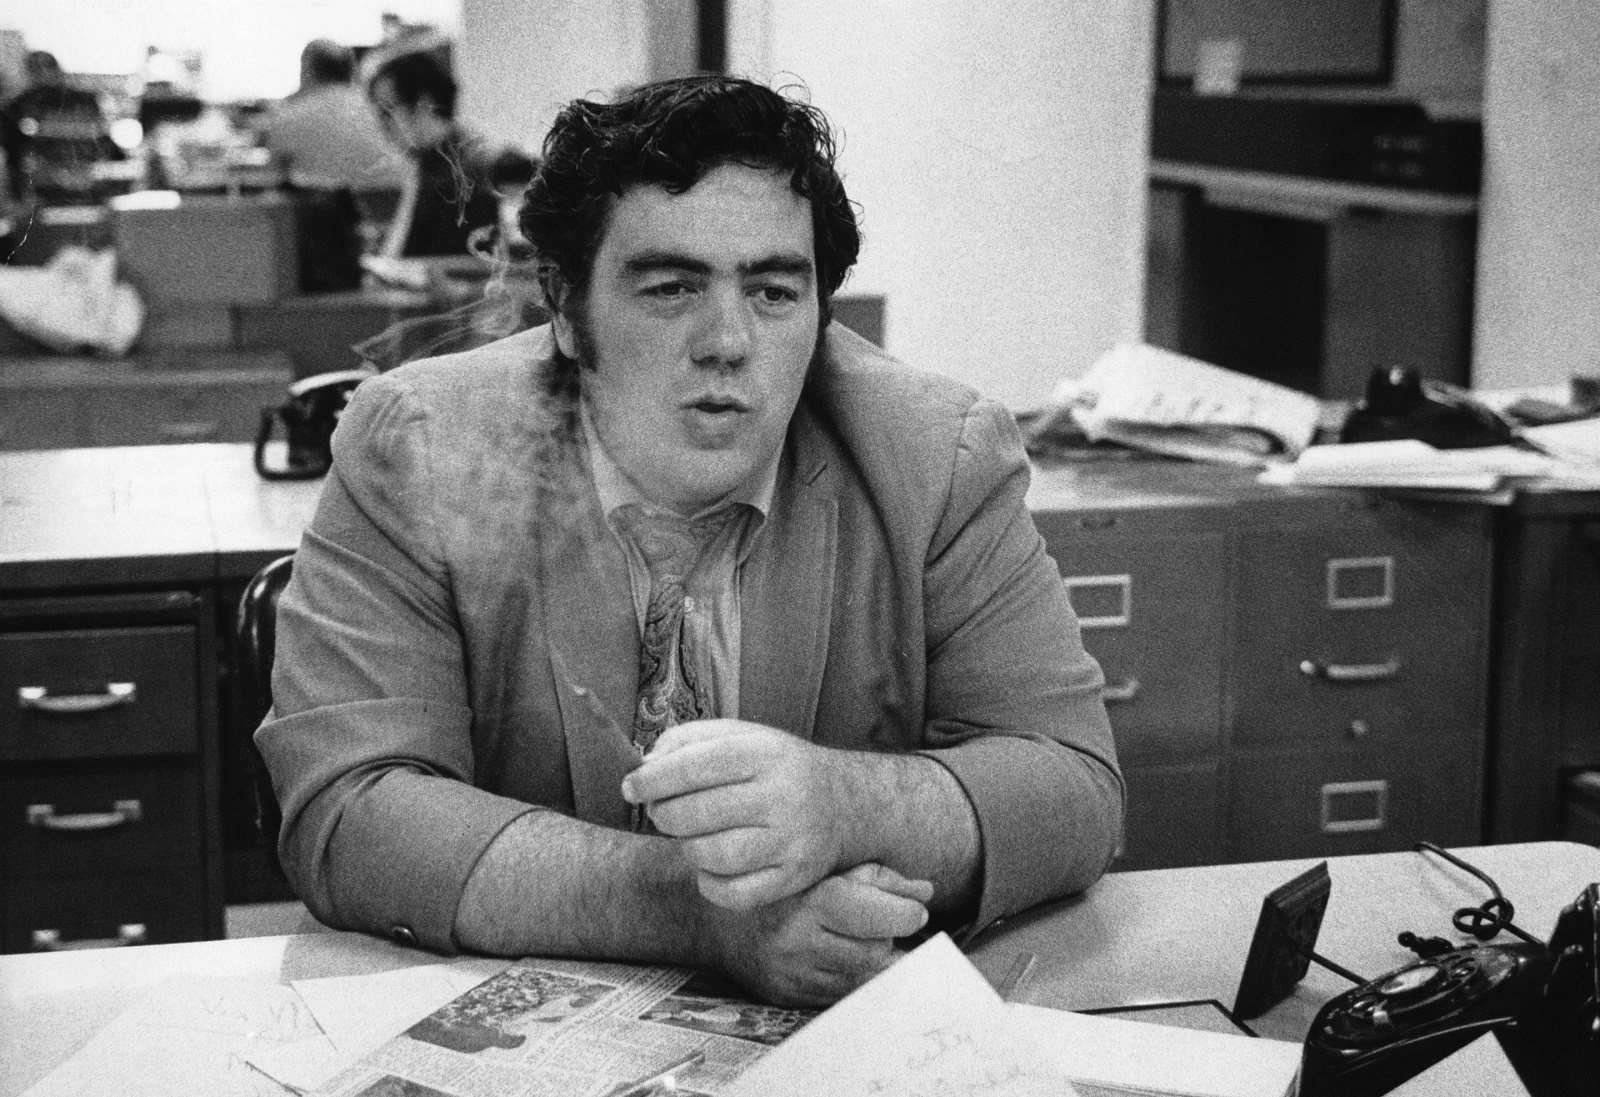 Jimmy Breslin in New York in 1970. (Michael Evans/The New York Times)